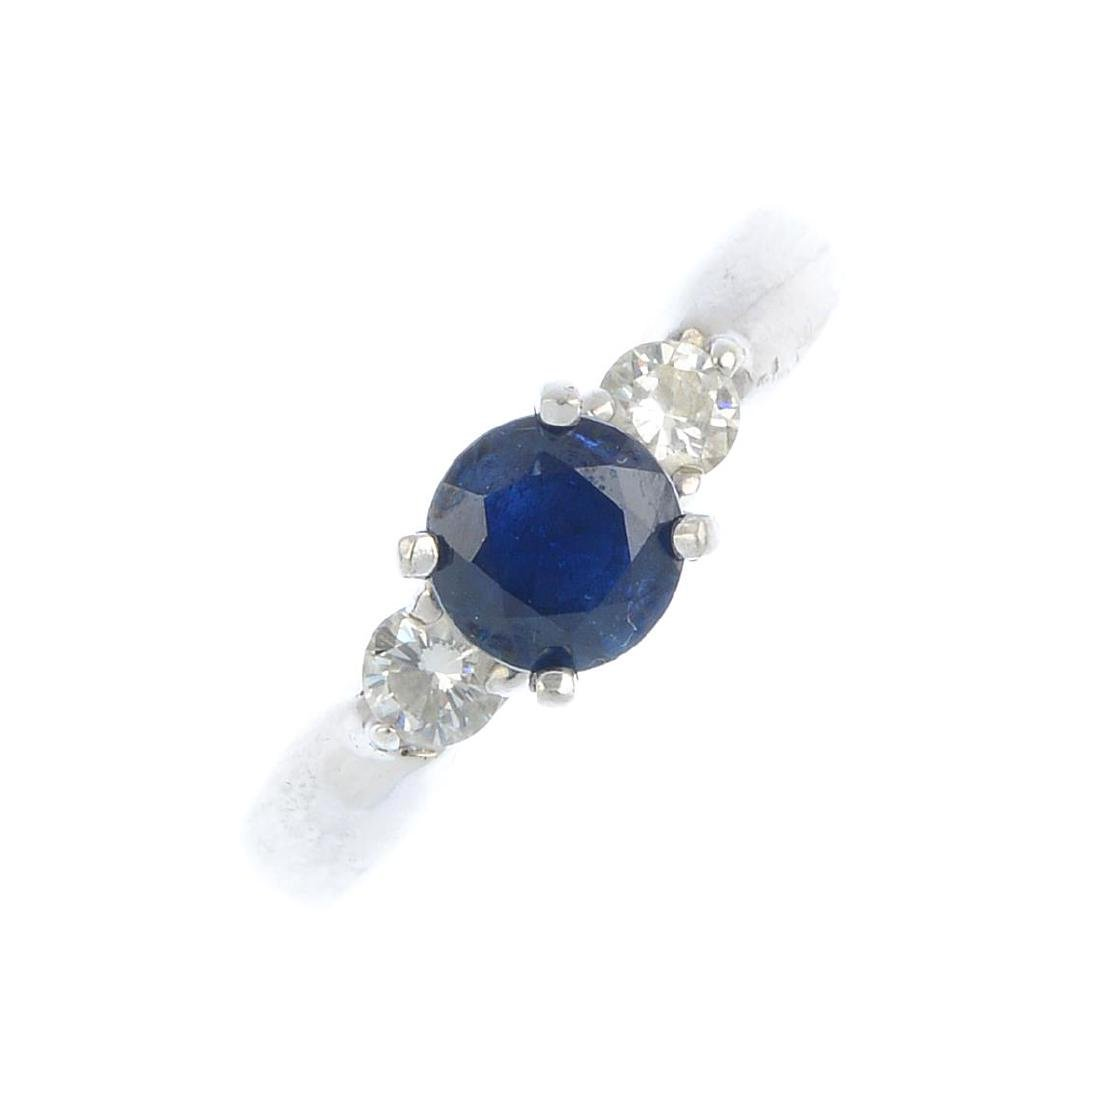 A sapphire and diamond three-stone ring. The